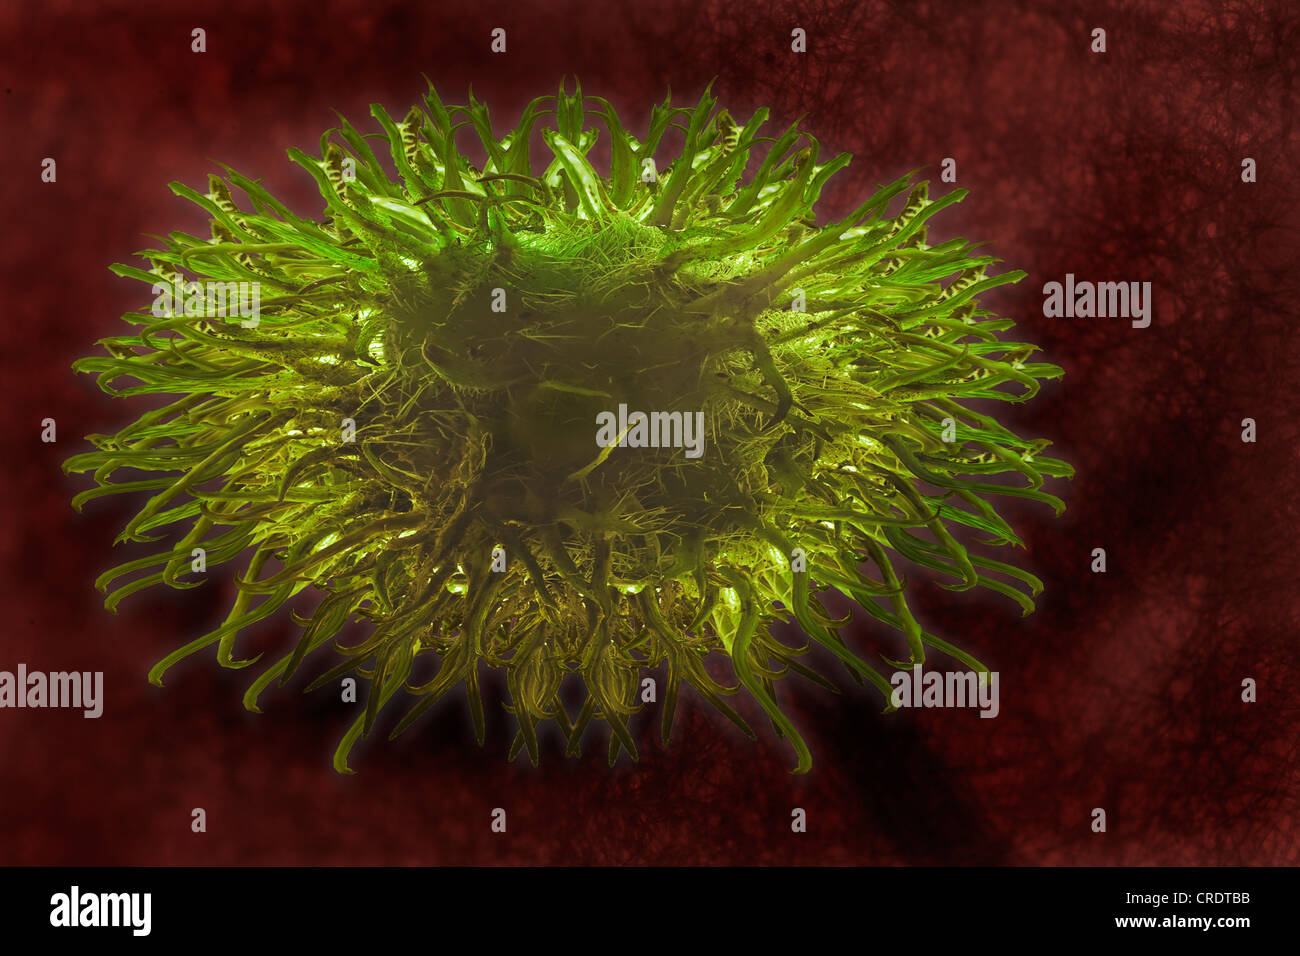 Dendritic cell of the immune system, illustration - Stock Image